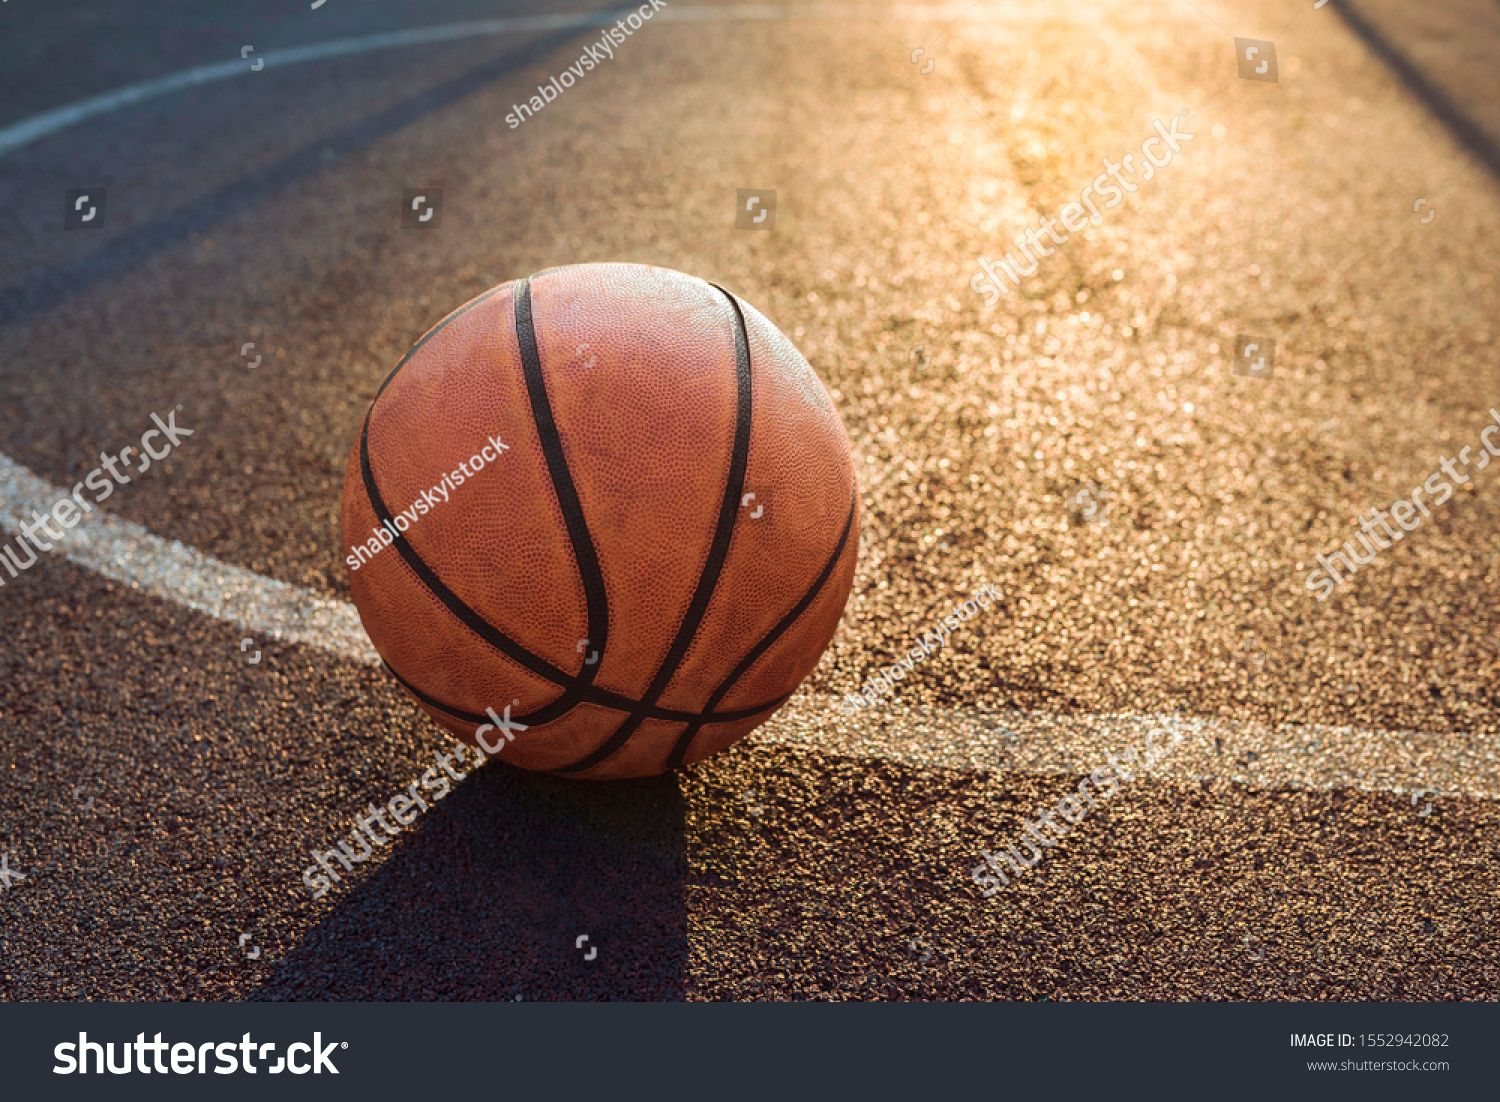 Basketball Ball On Sports Field Healthy Royalty Free Image Photo In 2020 Basketball Ball Sports Basketball